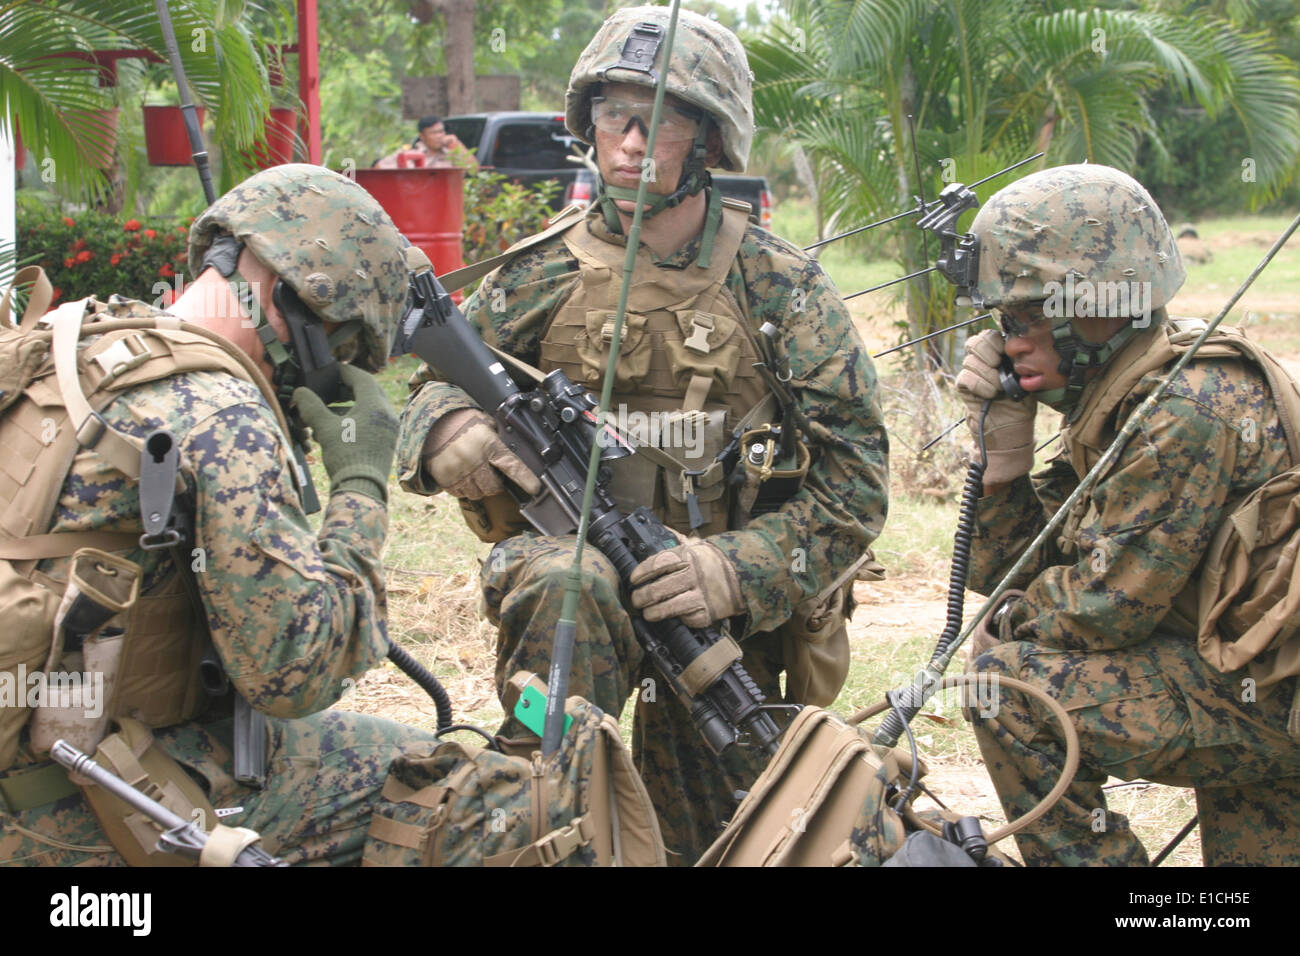 U.S. Marine Corps radio operators use communication gear during a ...